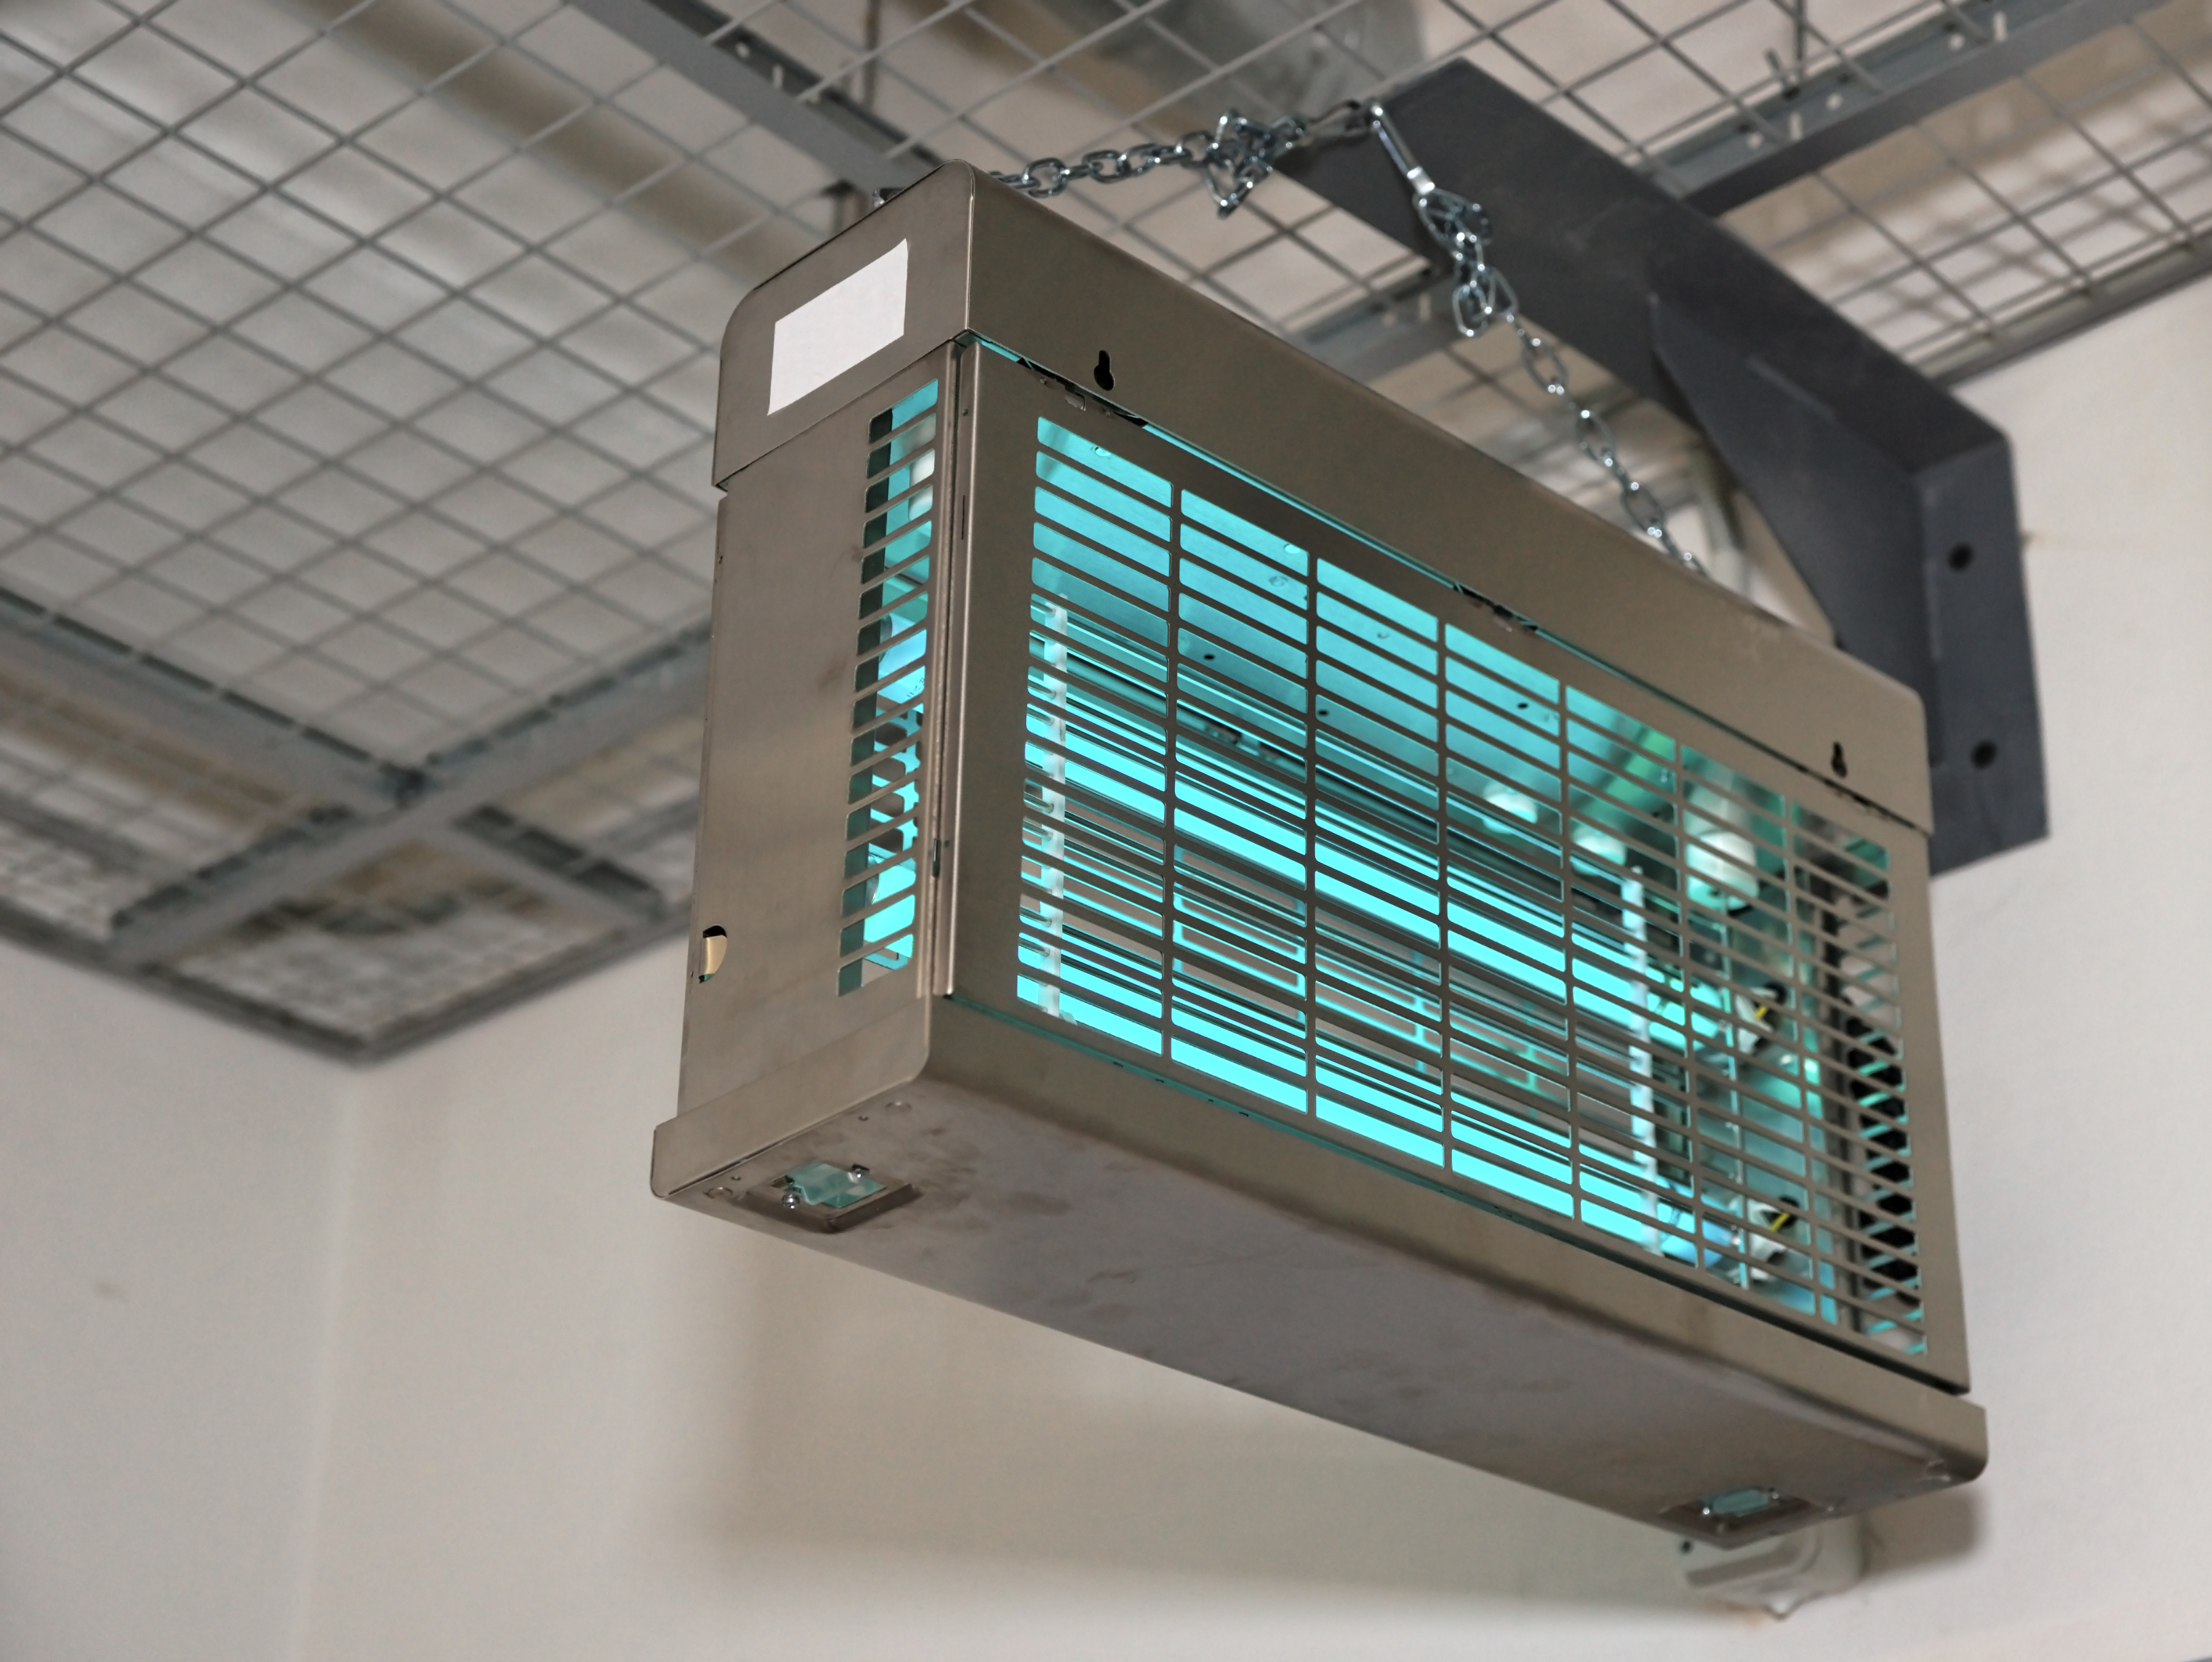 Ultraviolet lamps used to sterilize air, copy space